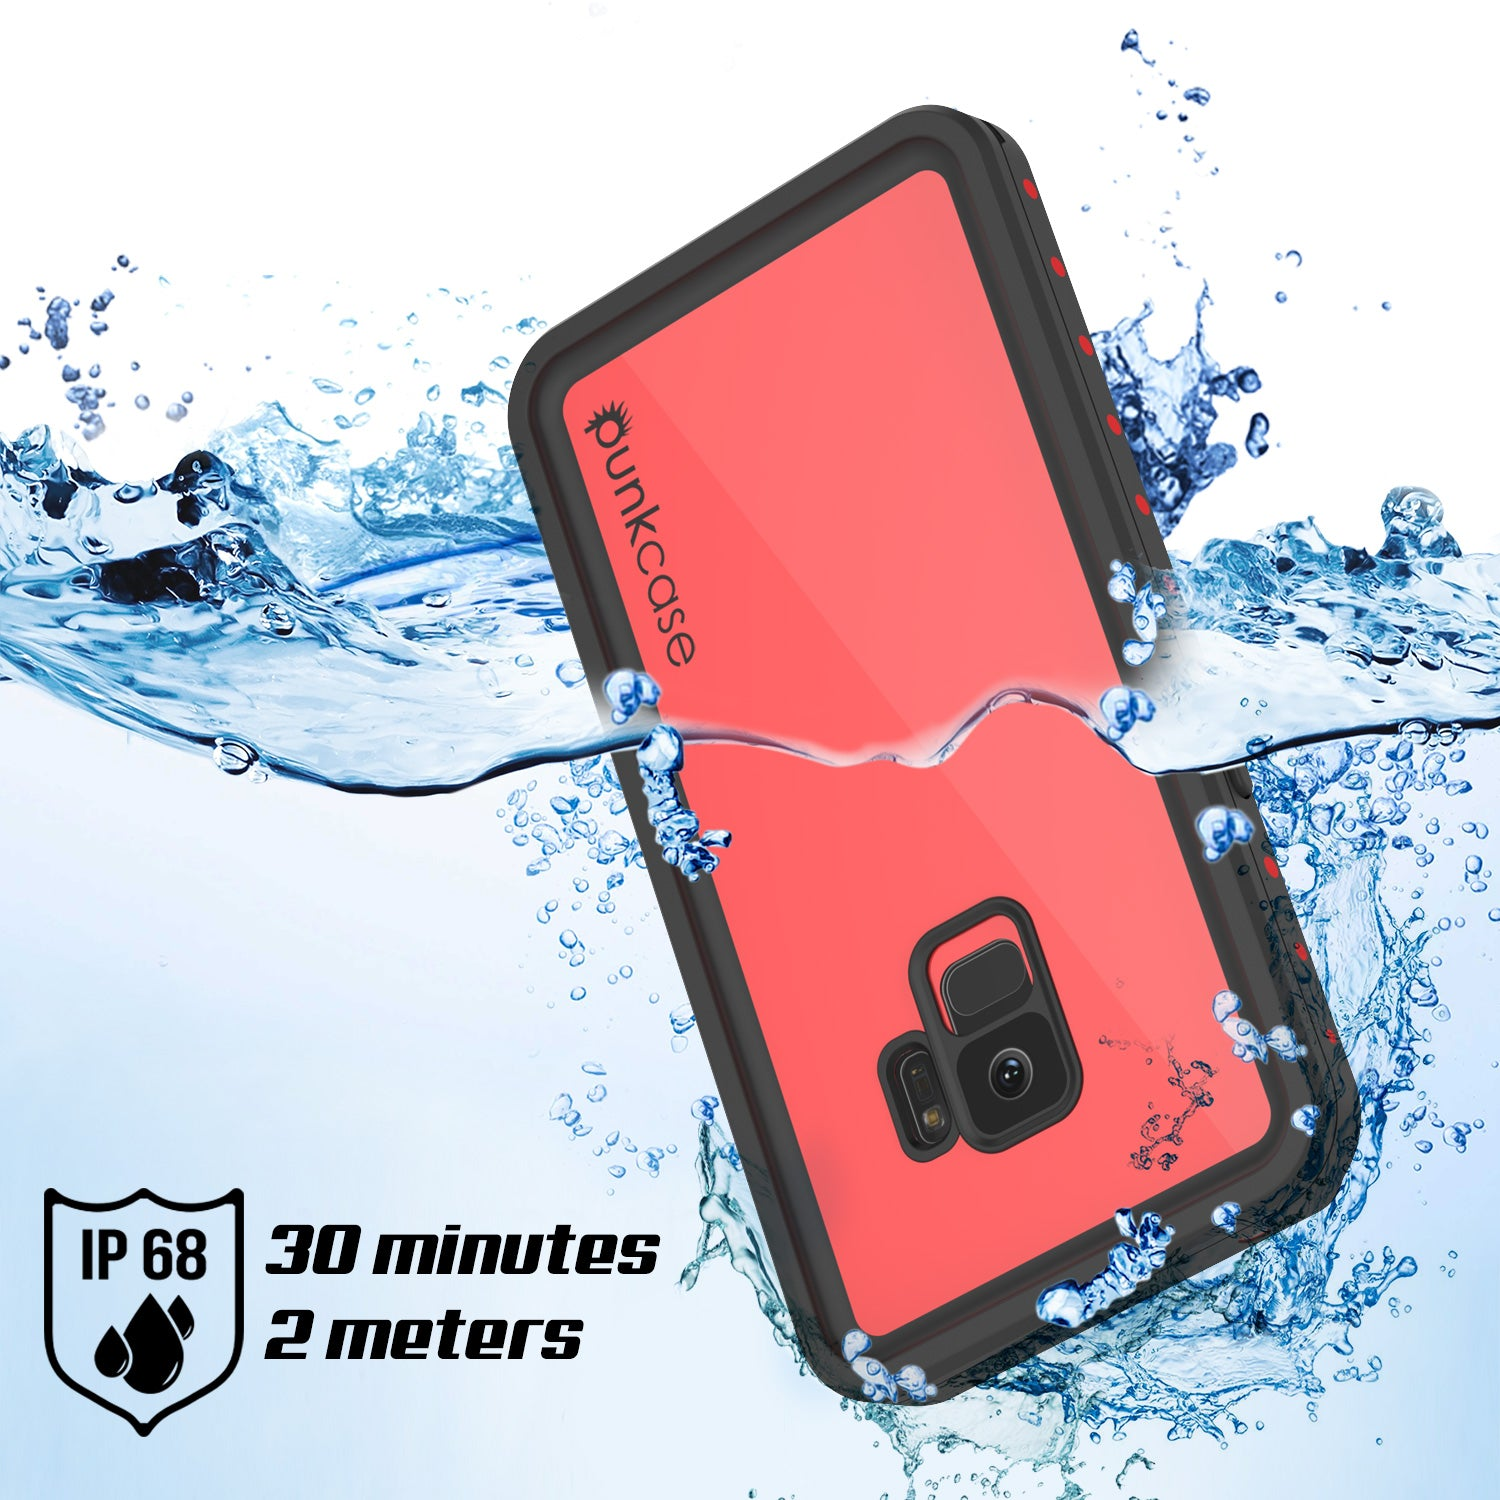 Galaxy S9 Waterproof Case PunkCase StudStar Red Thin 6 6ft Underwater IP68 Shock Snow Proof